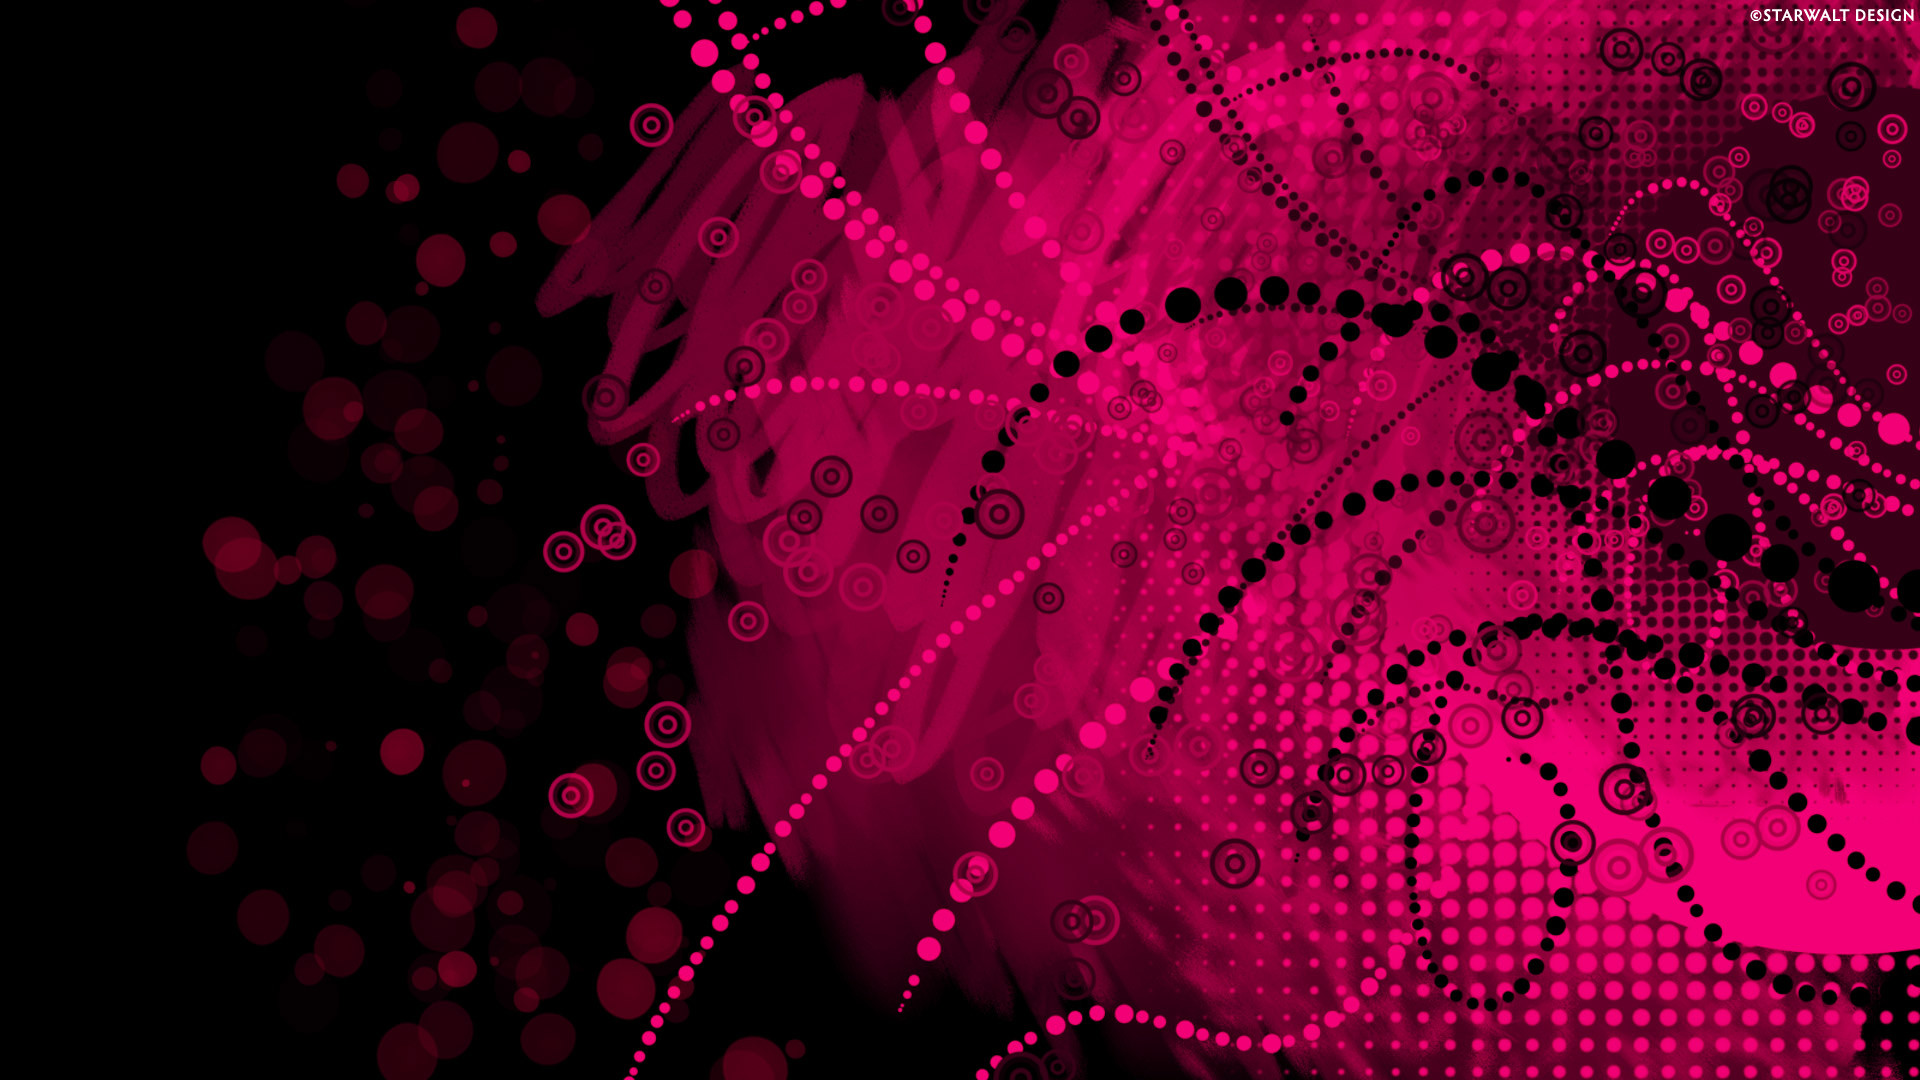 Pink and Black Wallpaper Backgrounds (71+ images)